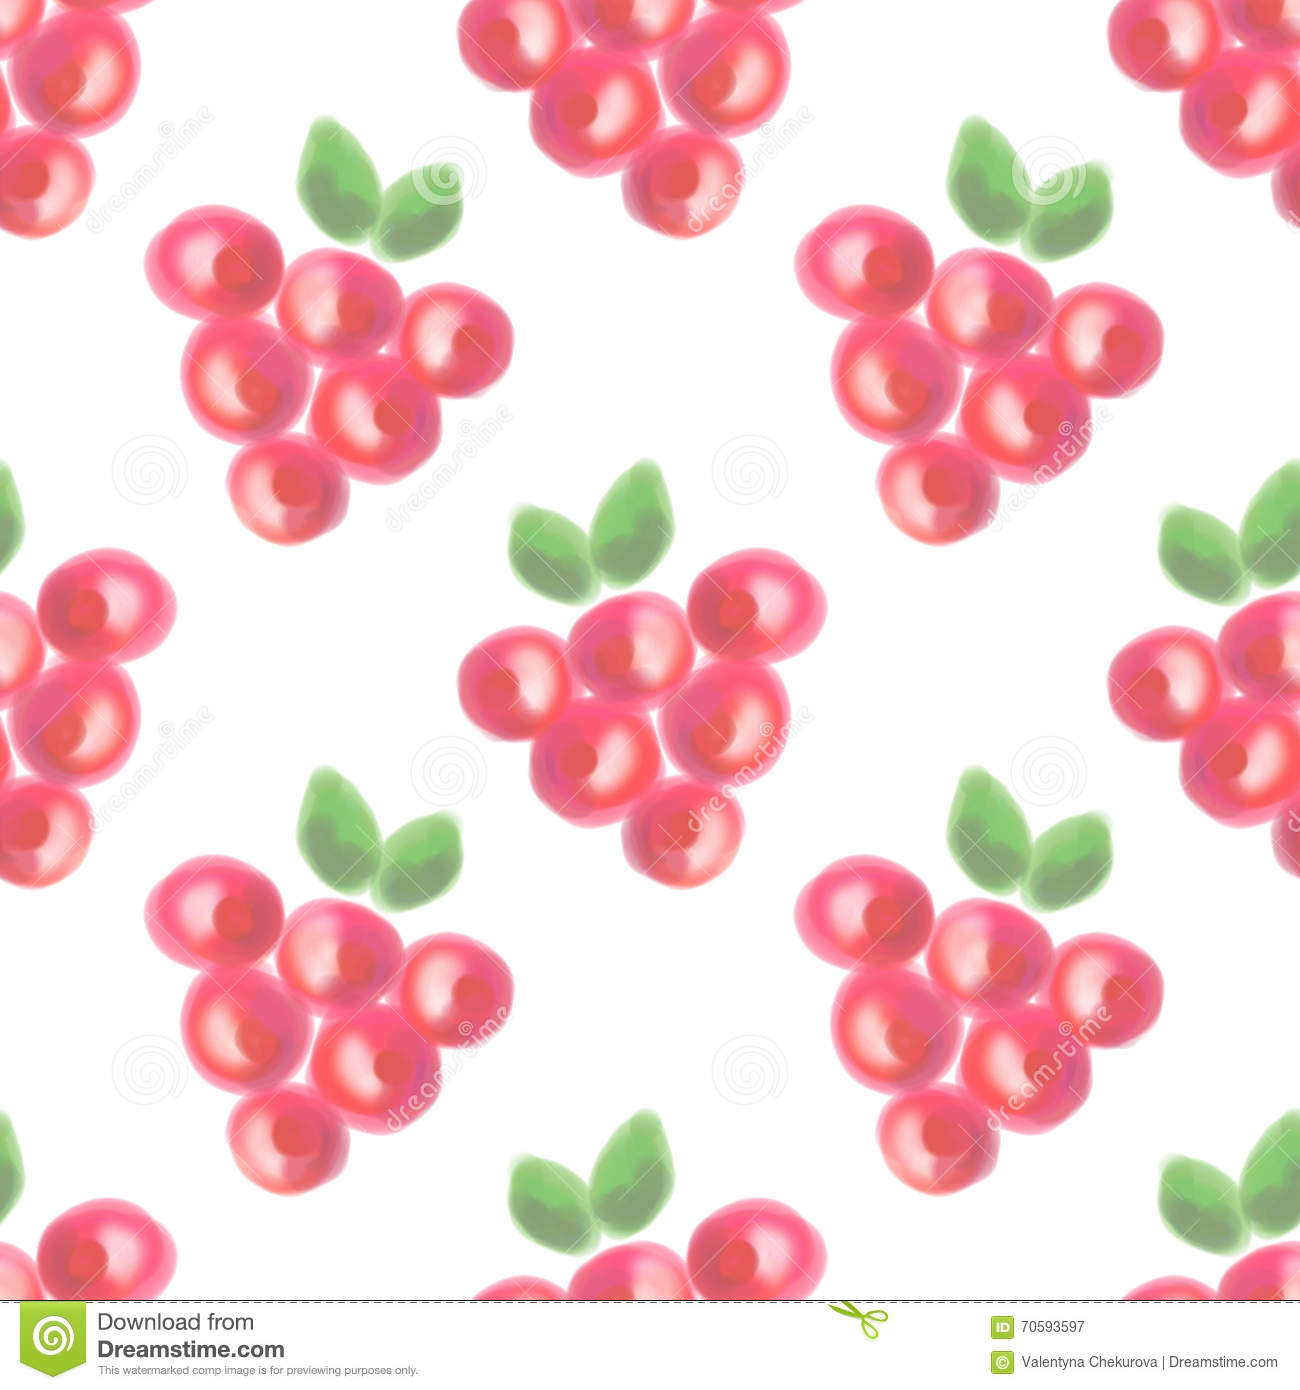 Seamless pattern with fruits. Watercolor background with hand drawn berries.